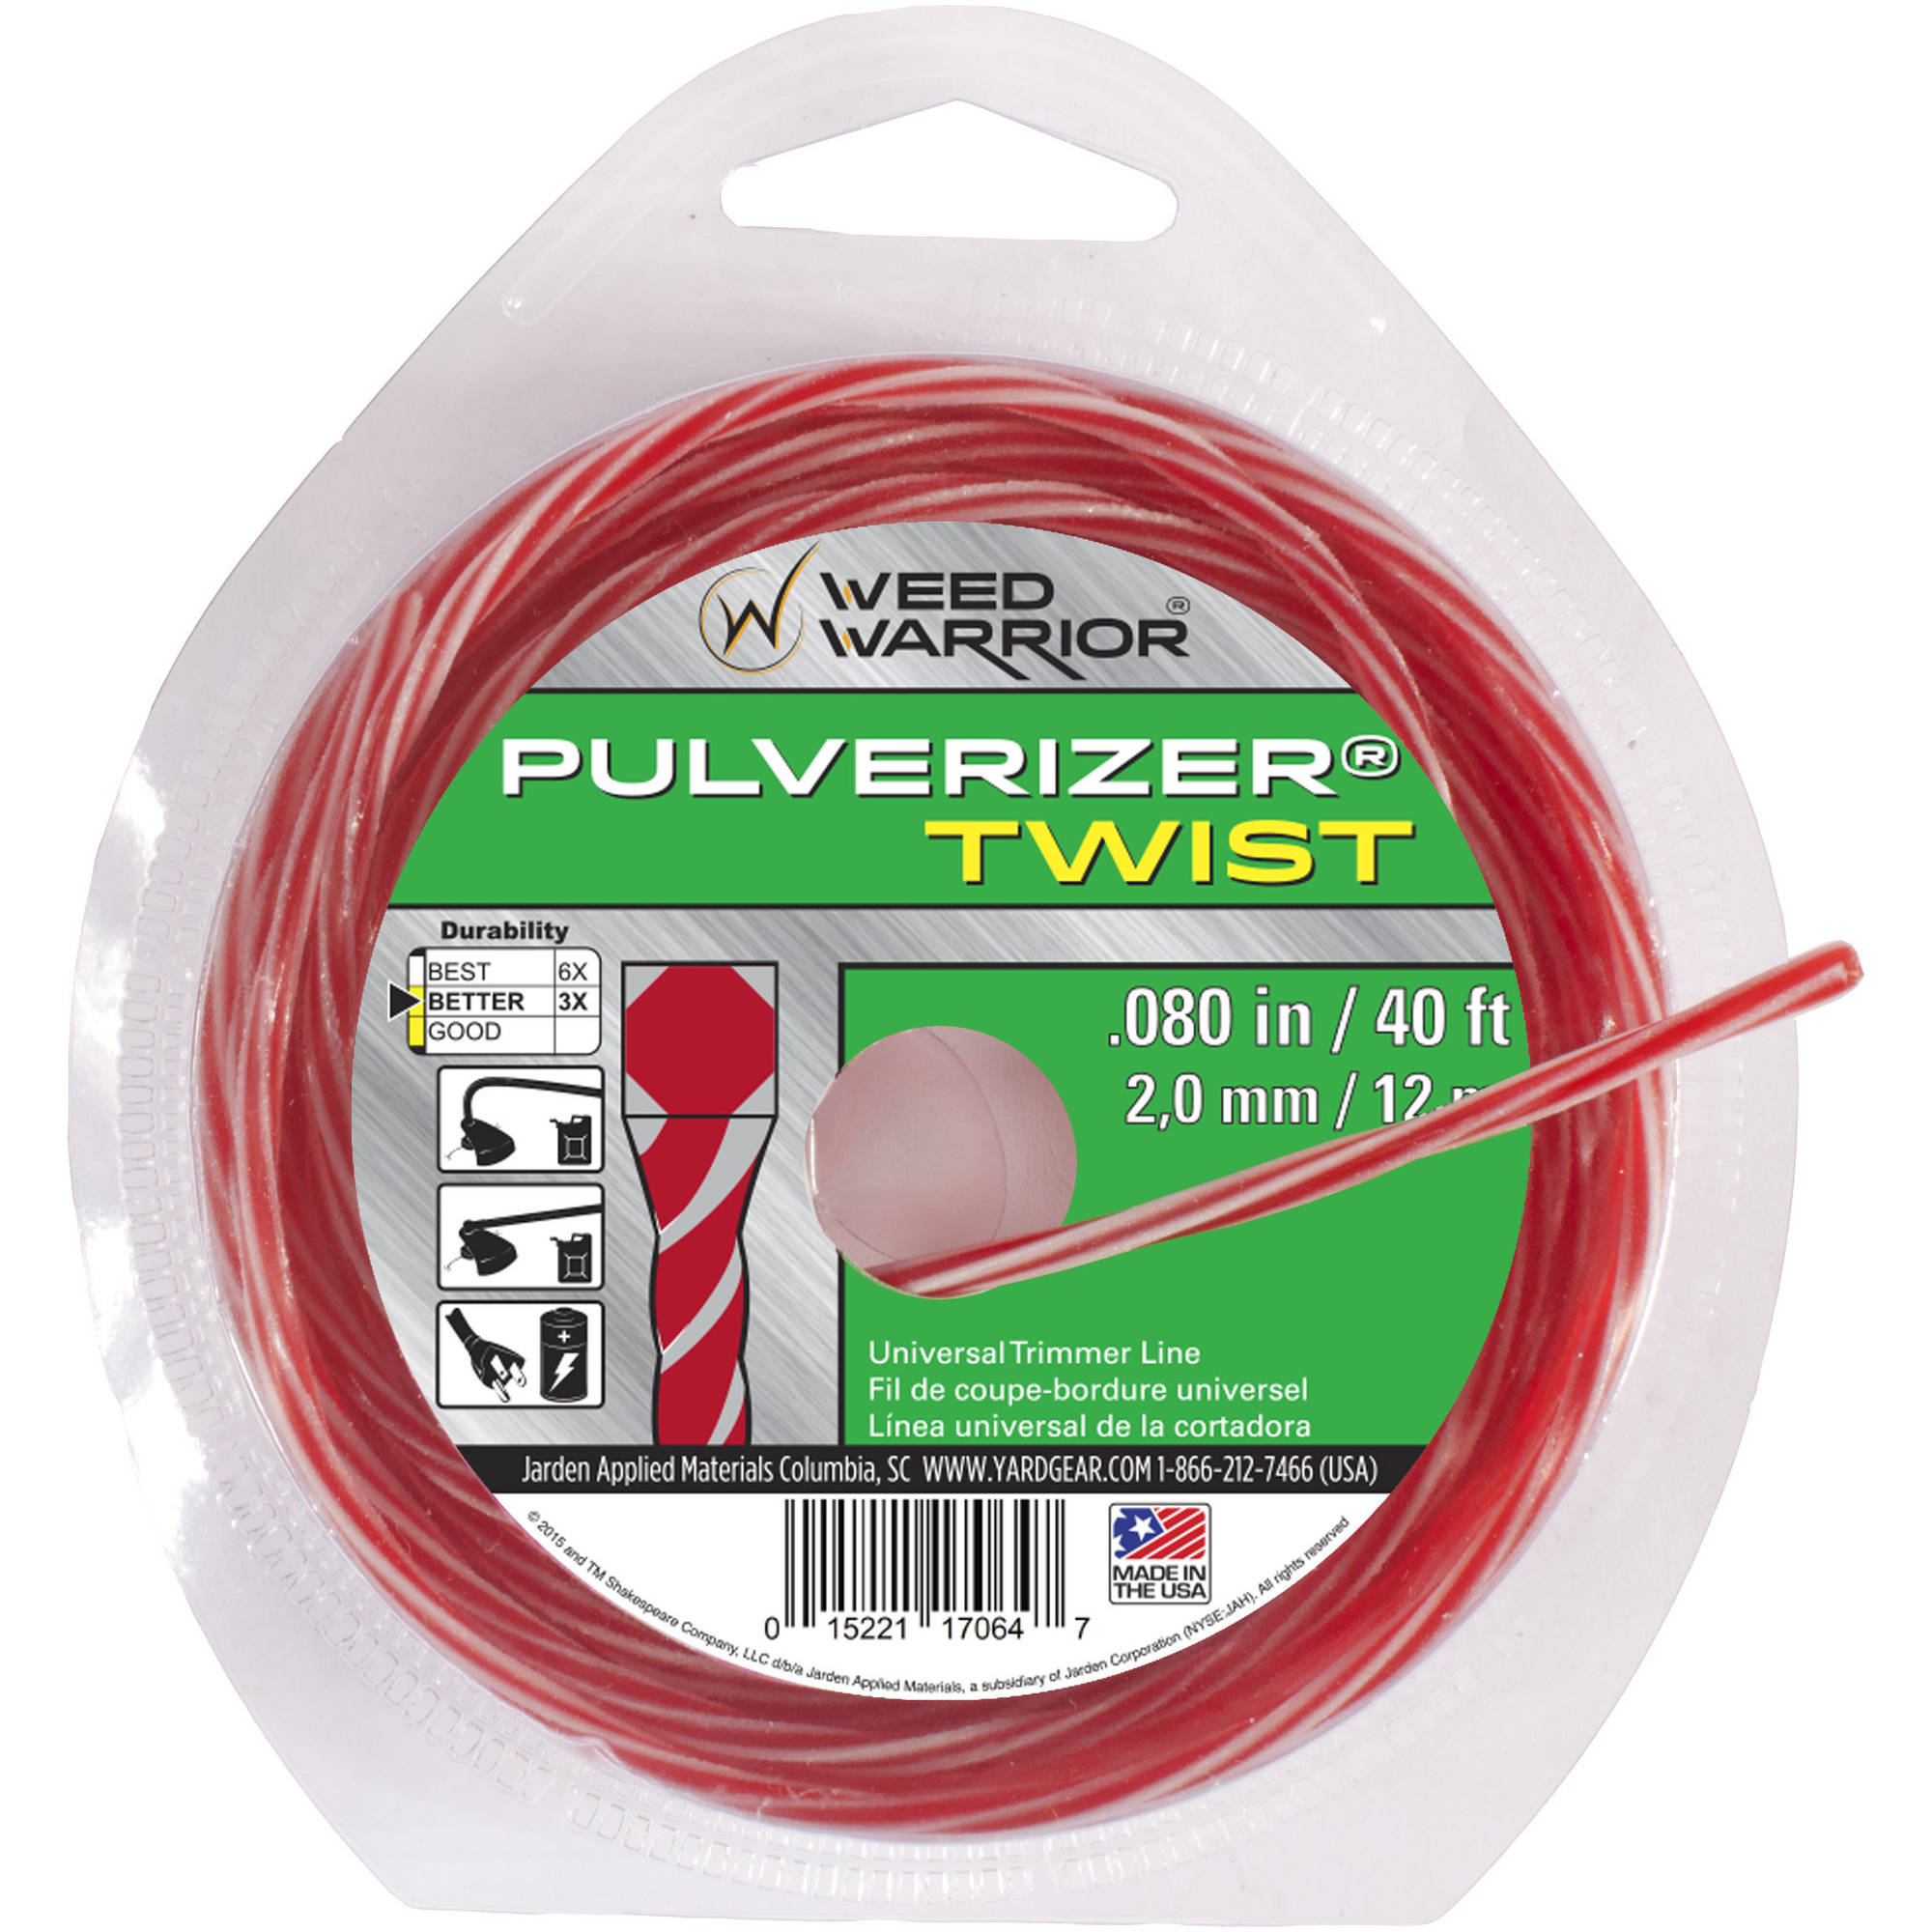 Weed Warrior Replacement Bicomponent Twist Trimmer Line .80, 40 ft. Loop Donut